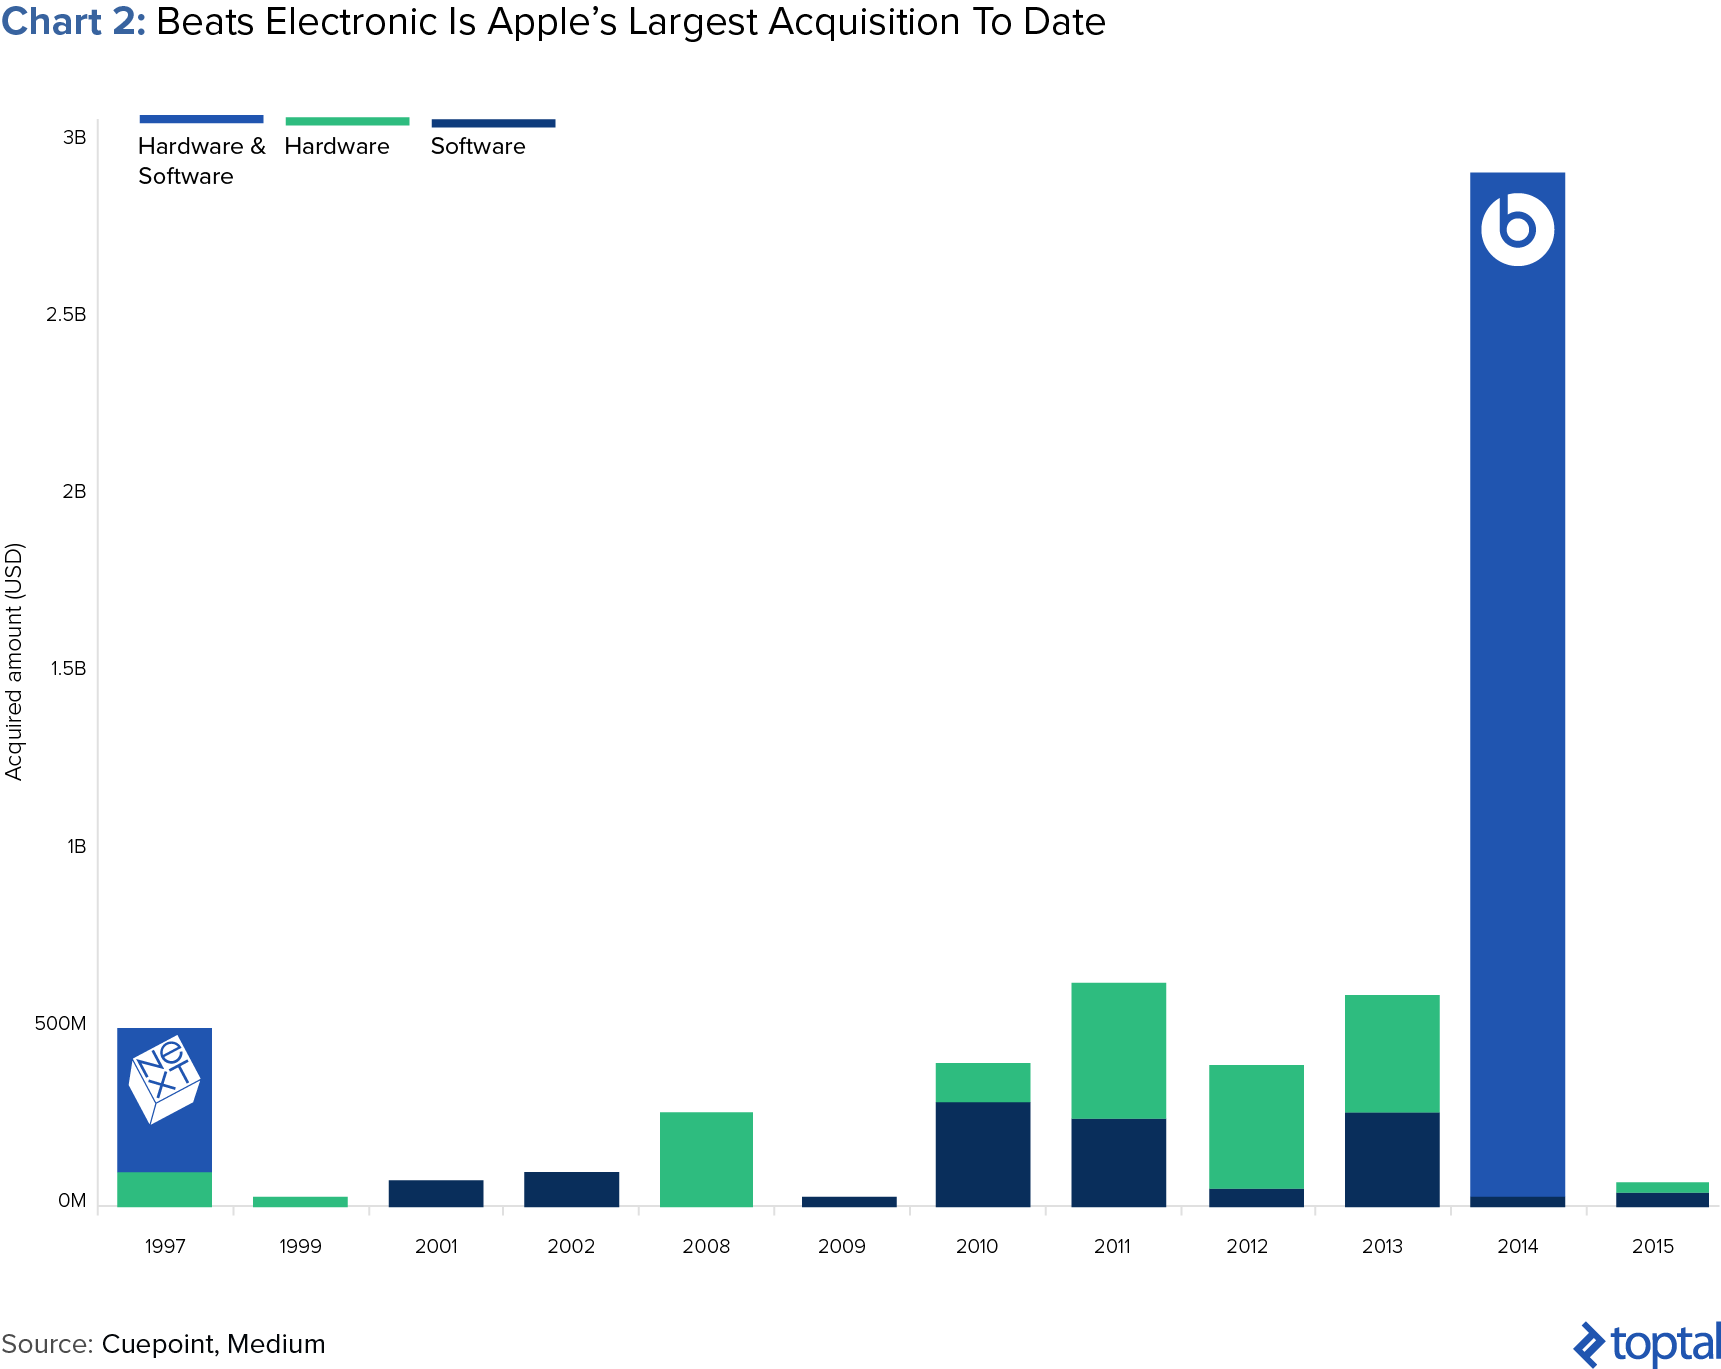 Chart 2: Beats Electronic is Apple's Largest Acquisition to Date